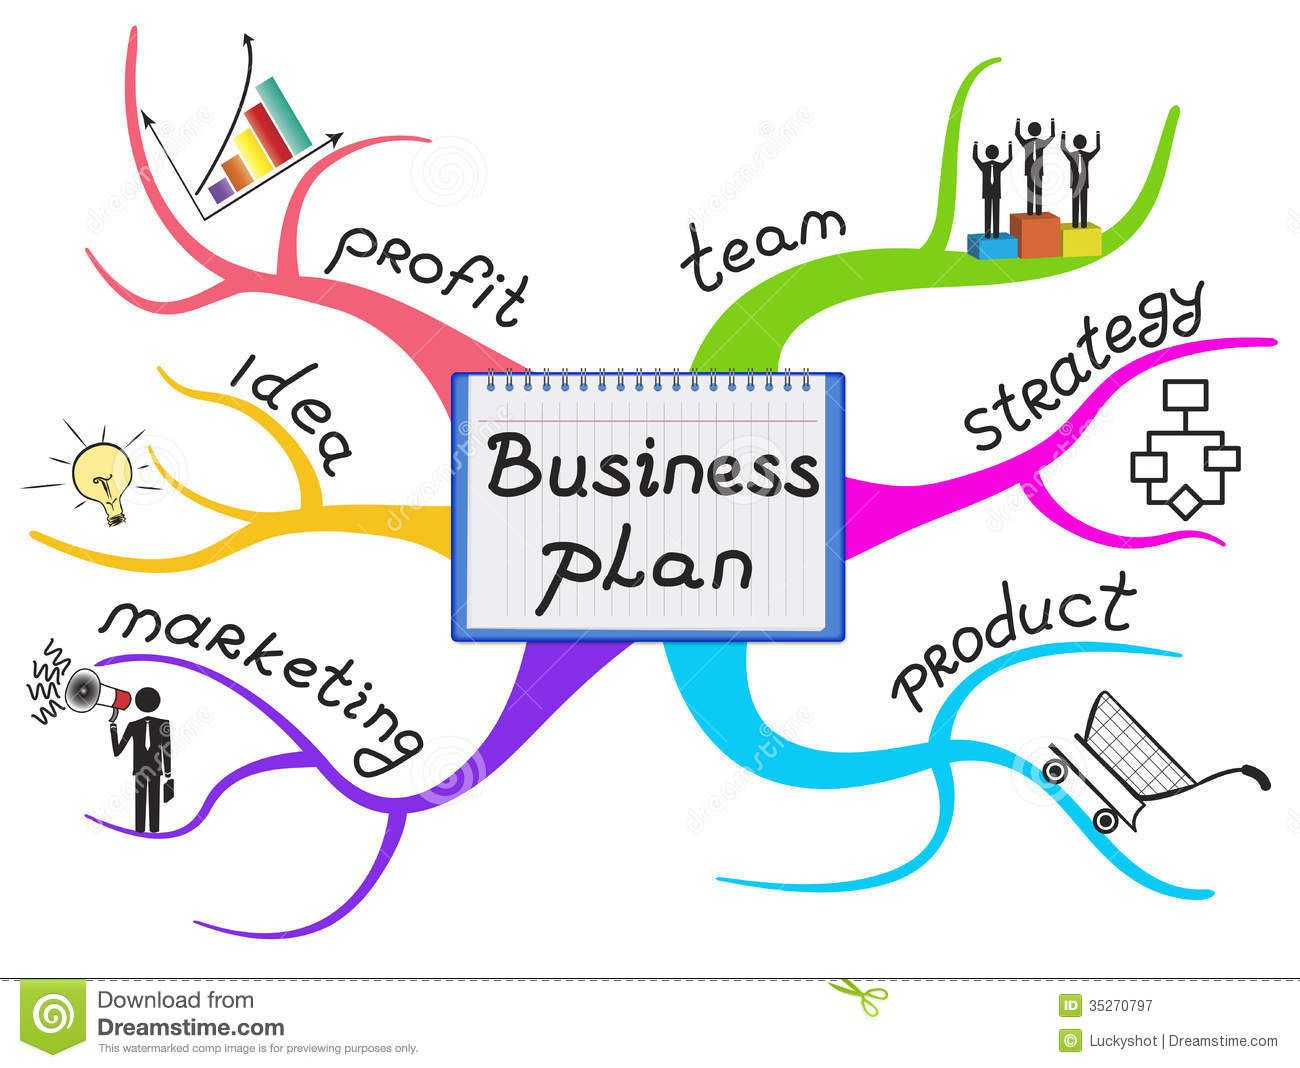 Business plan images